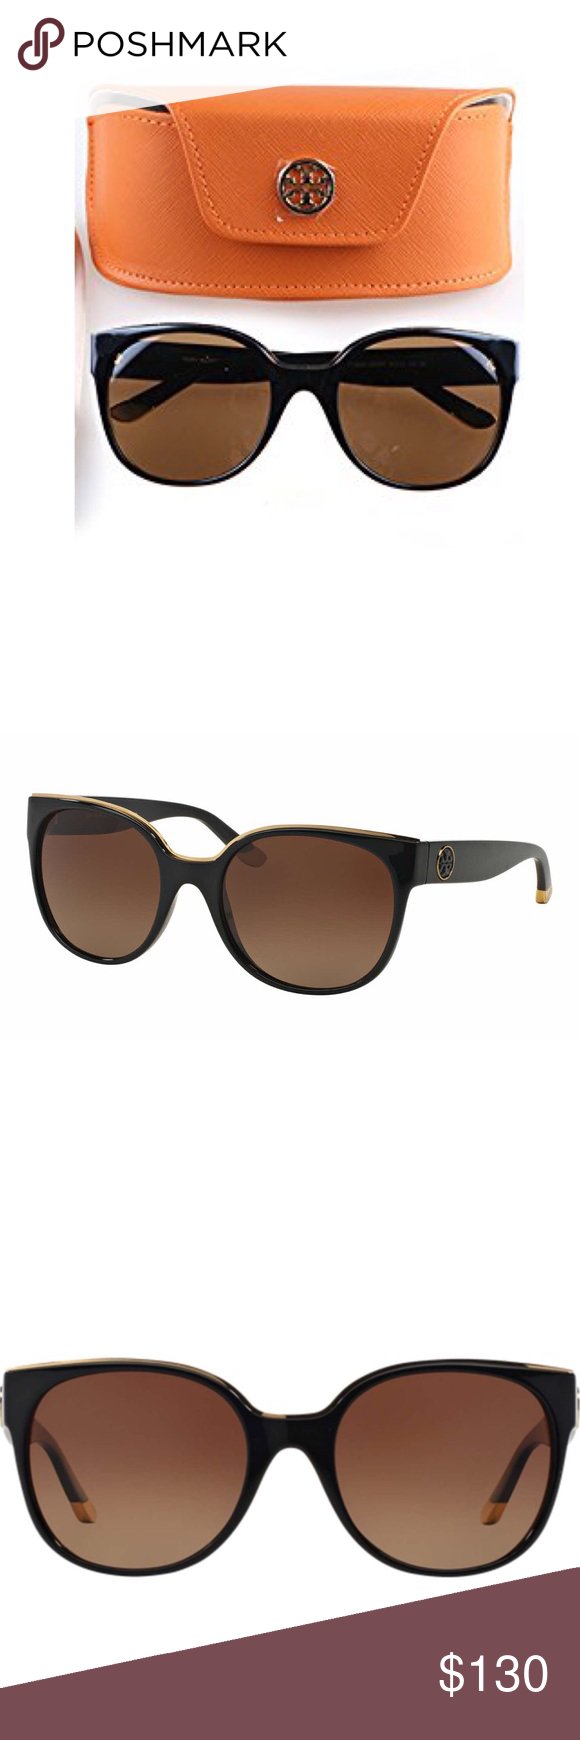 741f661bd3 Tory Burch Sunglasses Tory Burch TY9042 Sunglasses in black. Lenses  Brown  Gradient Polarized.